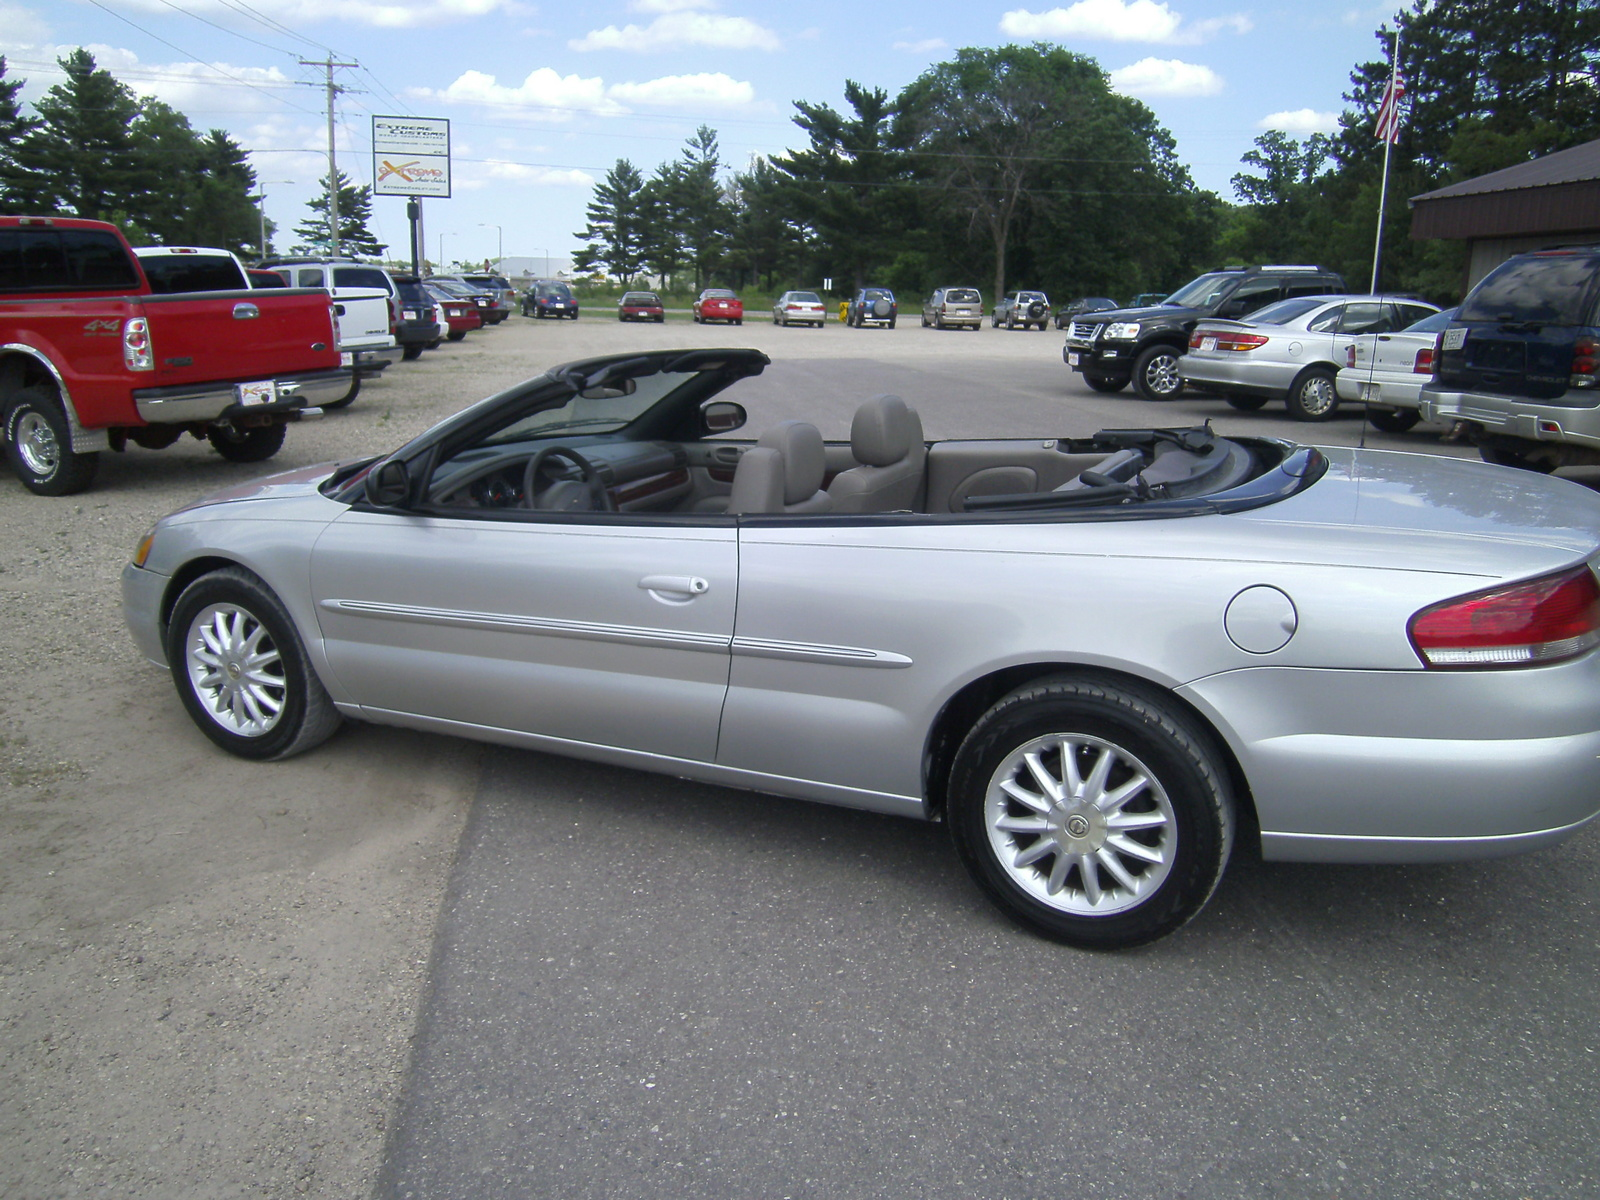 2002 chrysler sebring exterior pictures cargurus. Black Bedroom Furniture Sets. Home Design Ideas